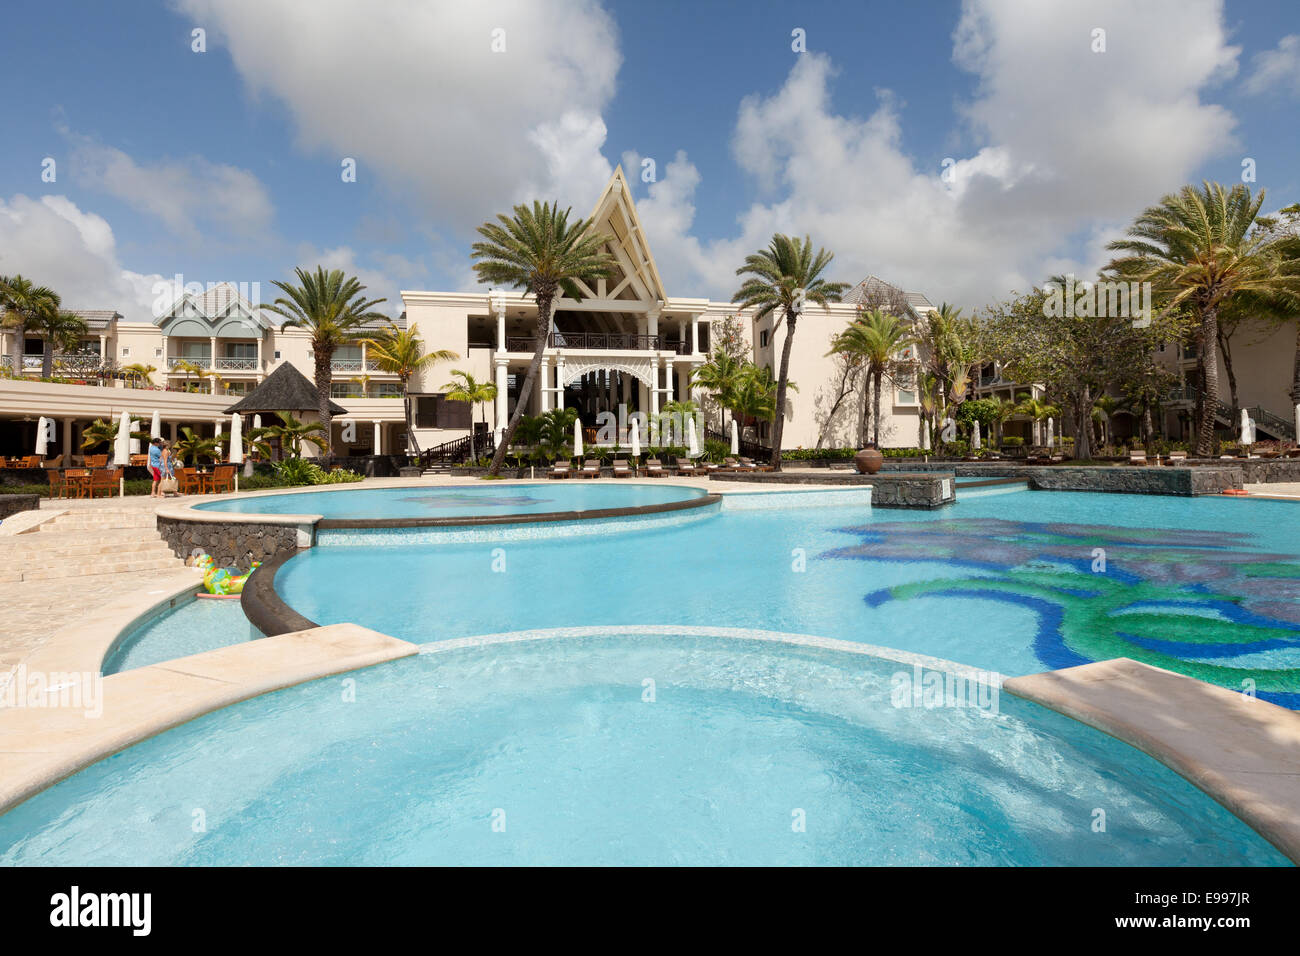 The luxury 5 star Residence Hotel and its swimming pool, Belle Mare, Mauritius - Stock Image